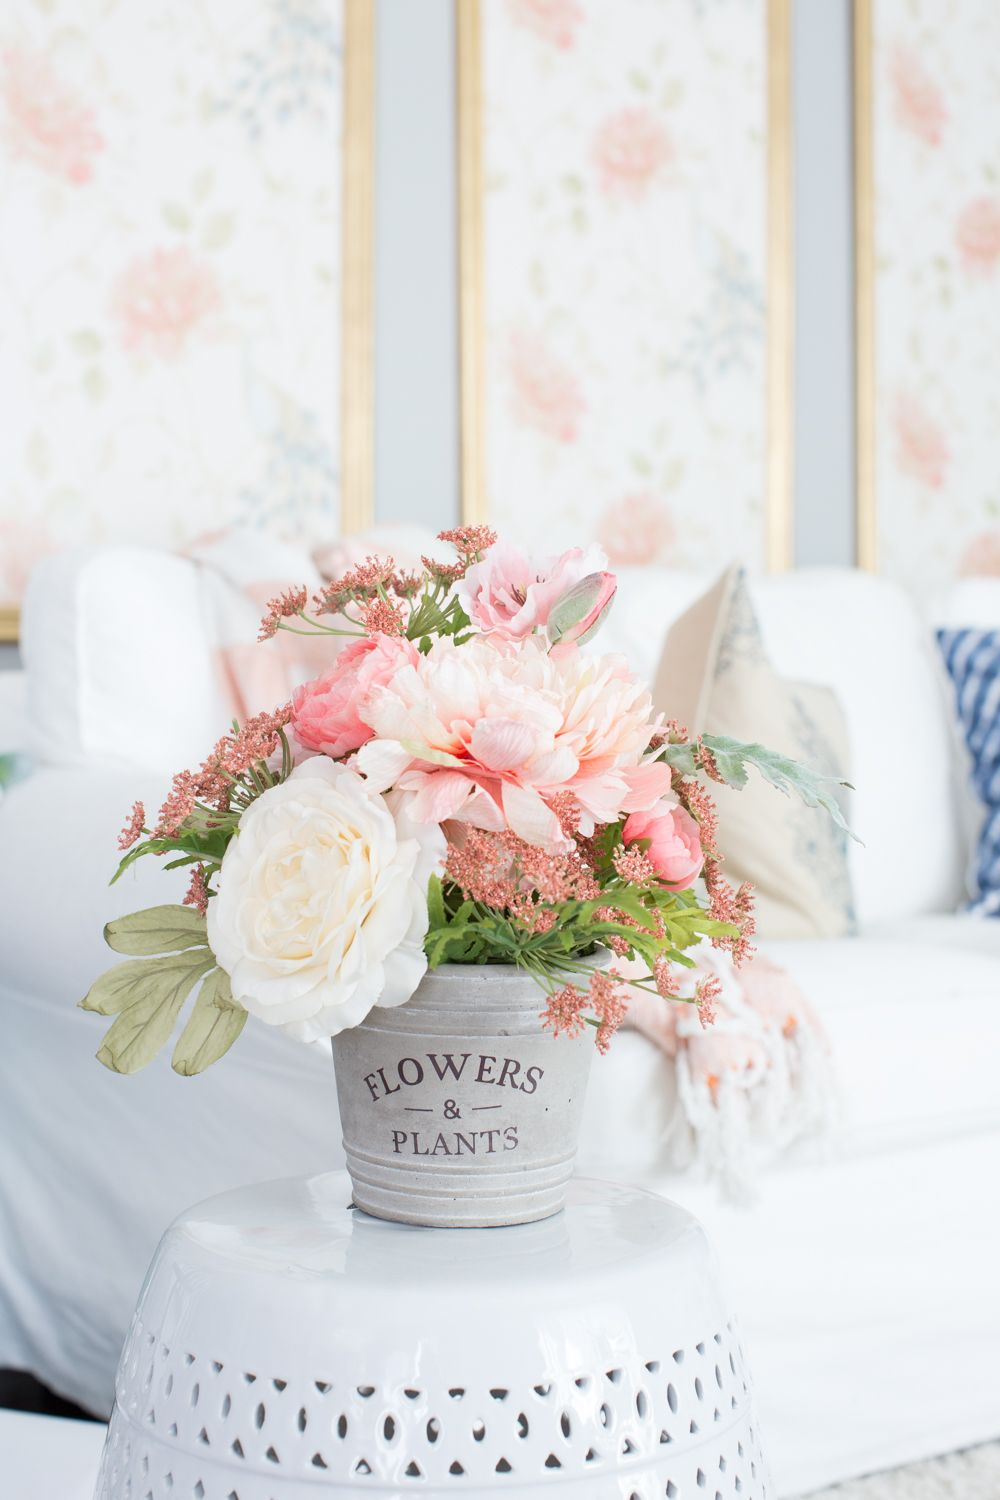 Tips and trick to the perfect floral arrangement from a